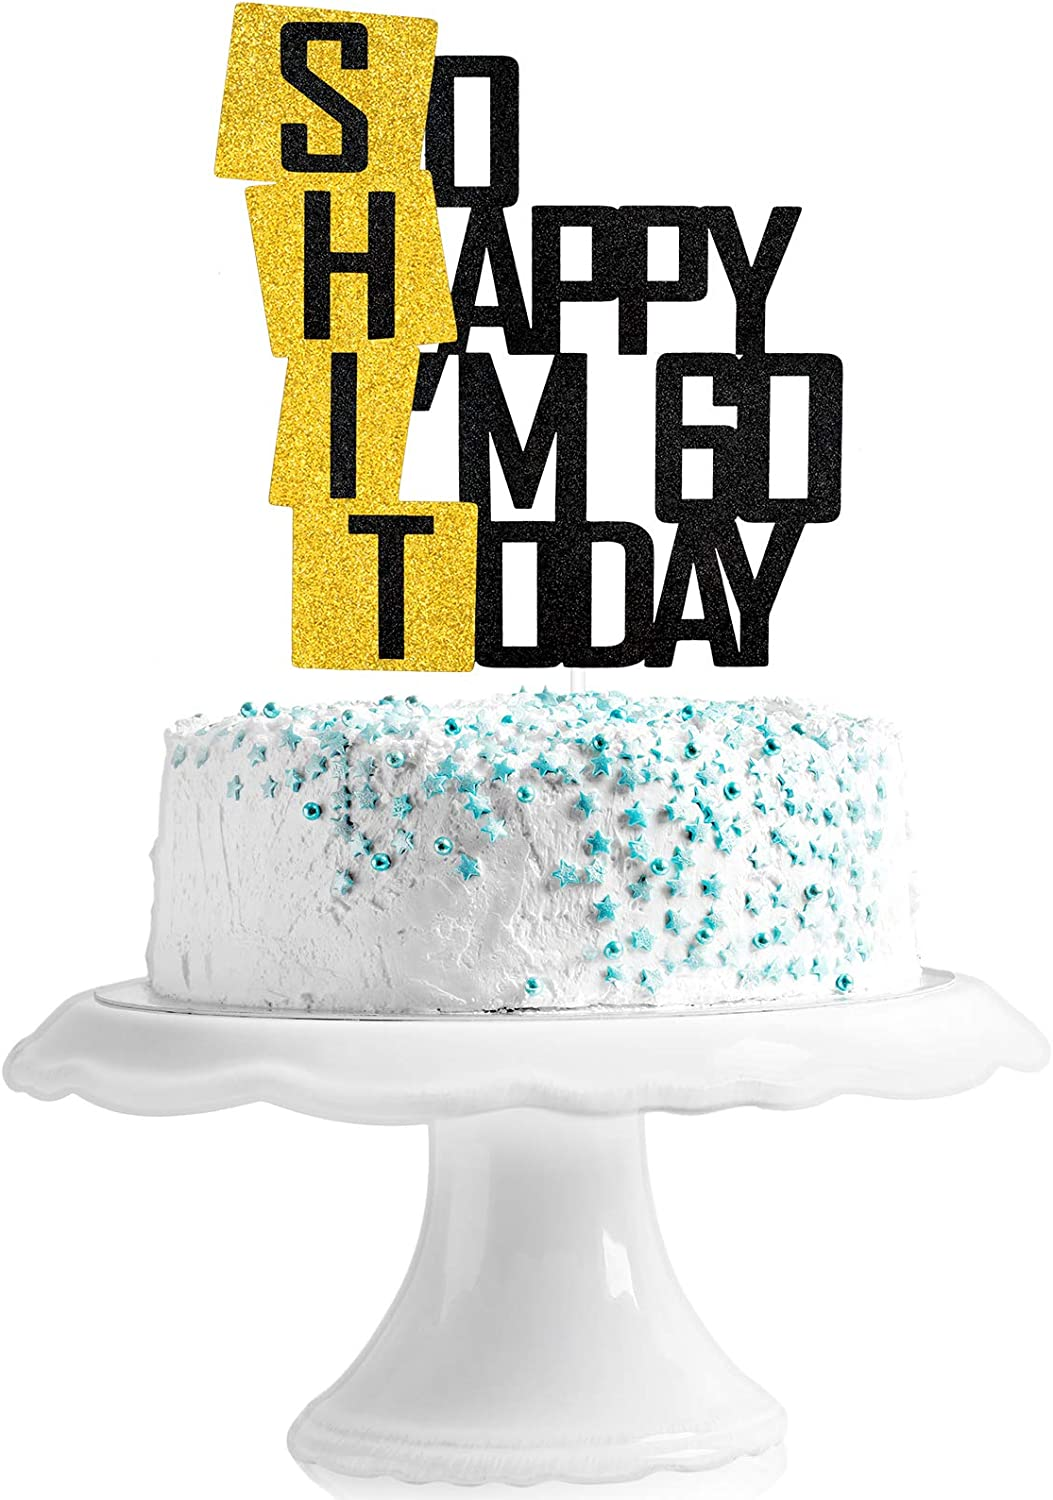 Funny So Happy I'm 60 Today Cake Topper - Glitter Fabulous Sixty Years Birthday Cake Décor - Cheers To Dirty 60th Birthday Party Decoration